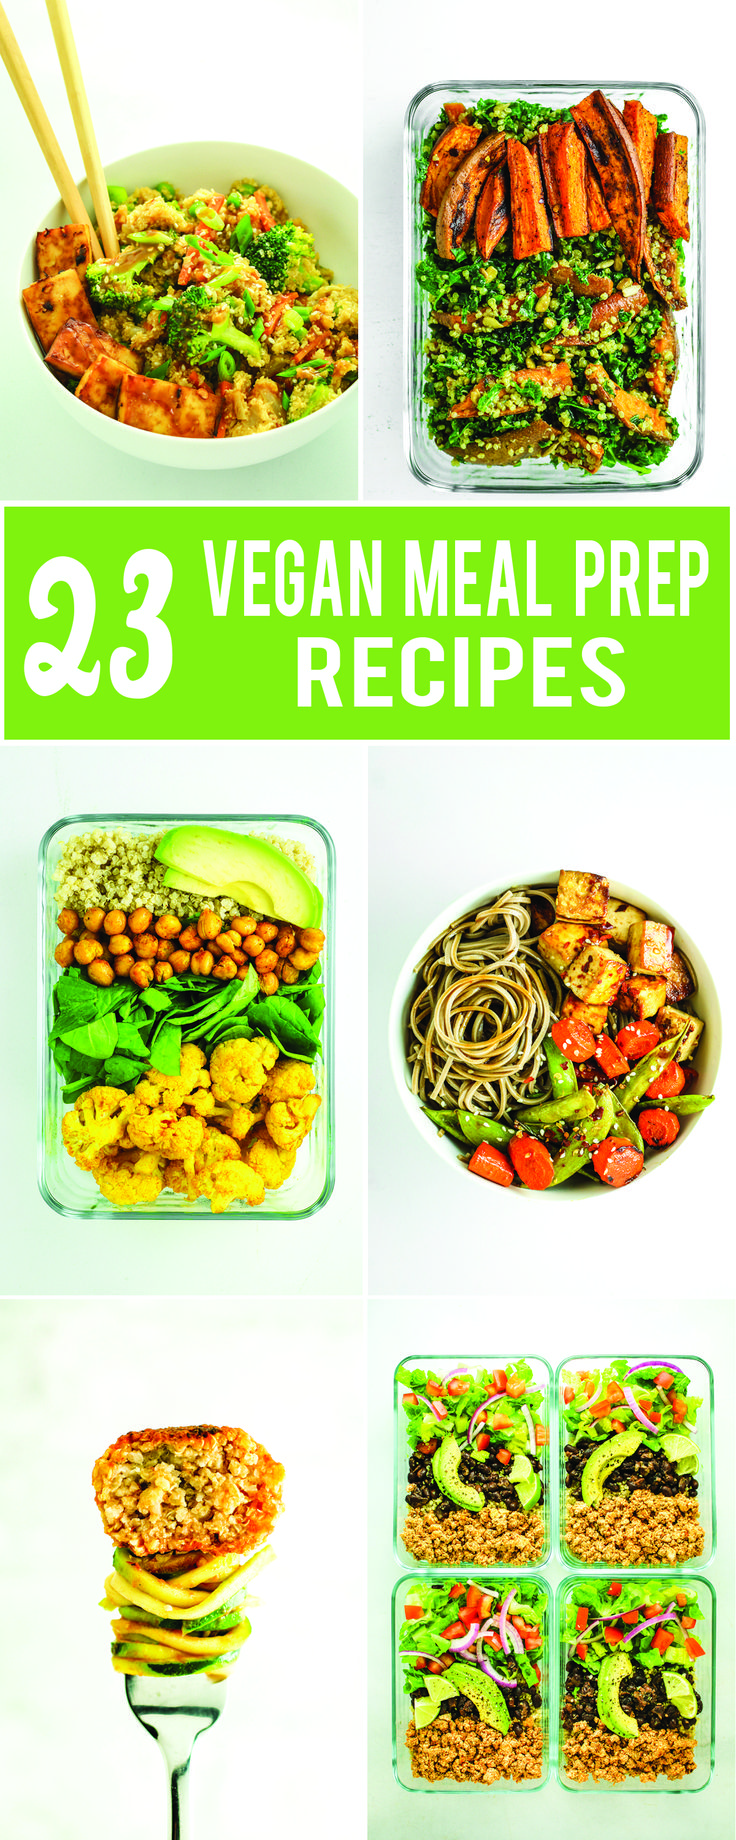 BEST Vegan Meal Prep Roundup - Burrito bowls, lettuce wraps, breakfast burritos, salads, etc. A few side dish ideas are included too - good for adding to your favorite grain + protein combo!